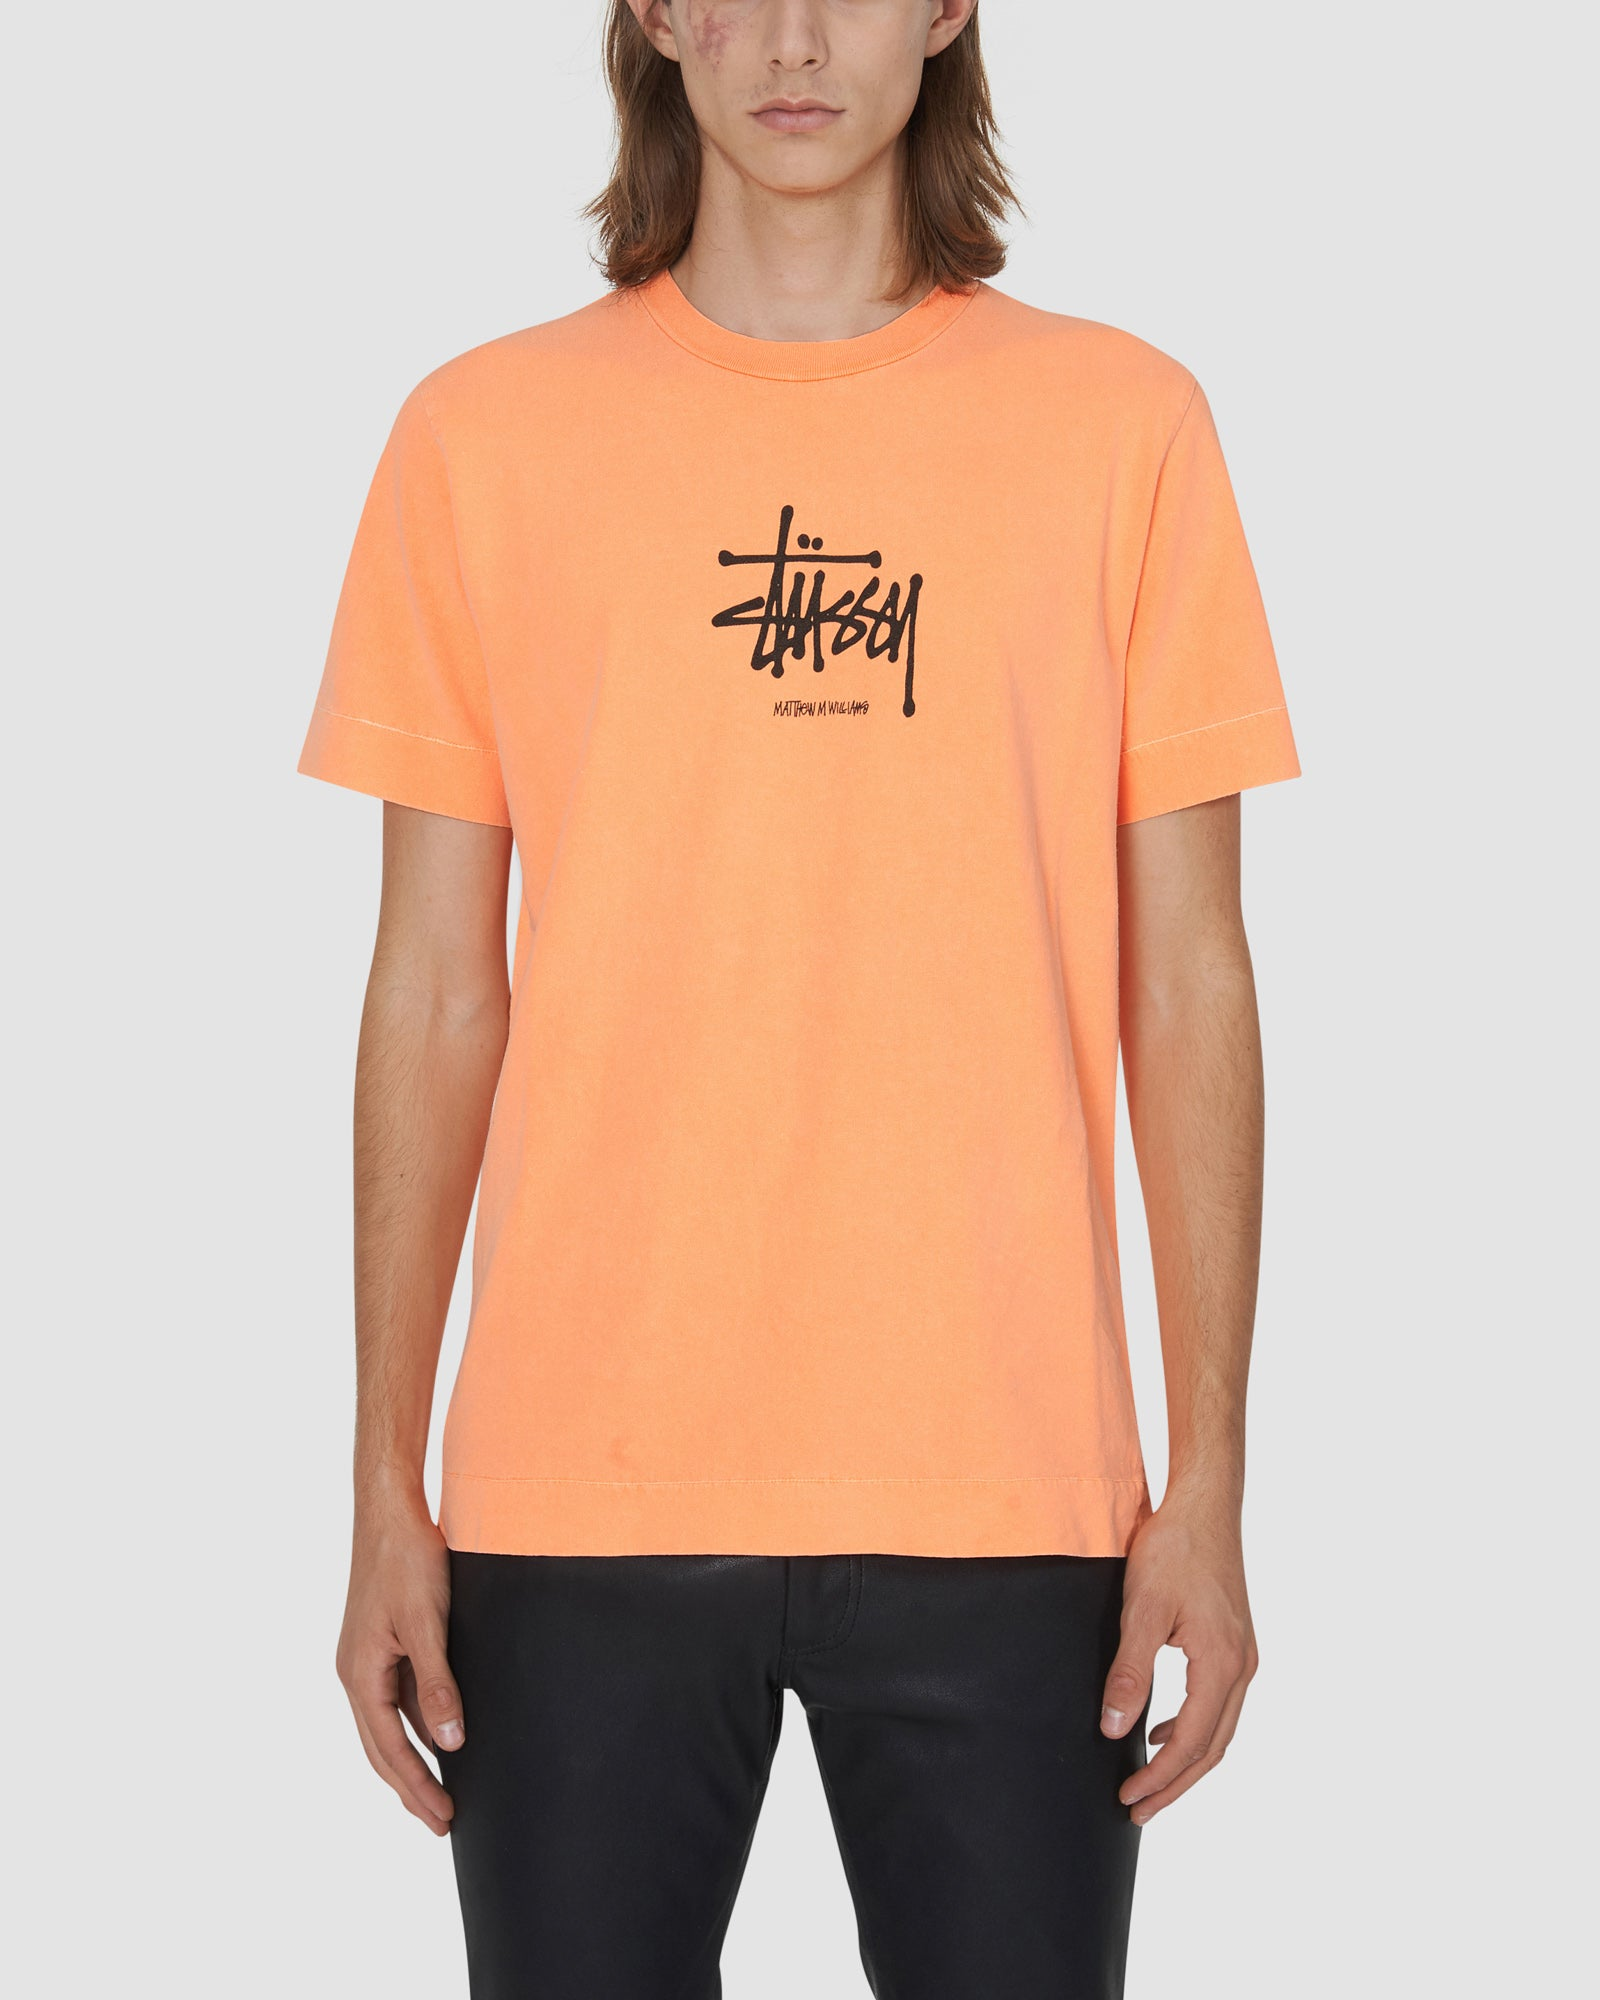 1017 ALYX 9SM | STUSSY S TEE | T-Shirt | F19, Man, Orange, STUSSY, T-Shirts, Woman